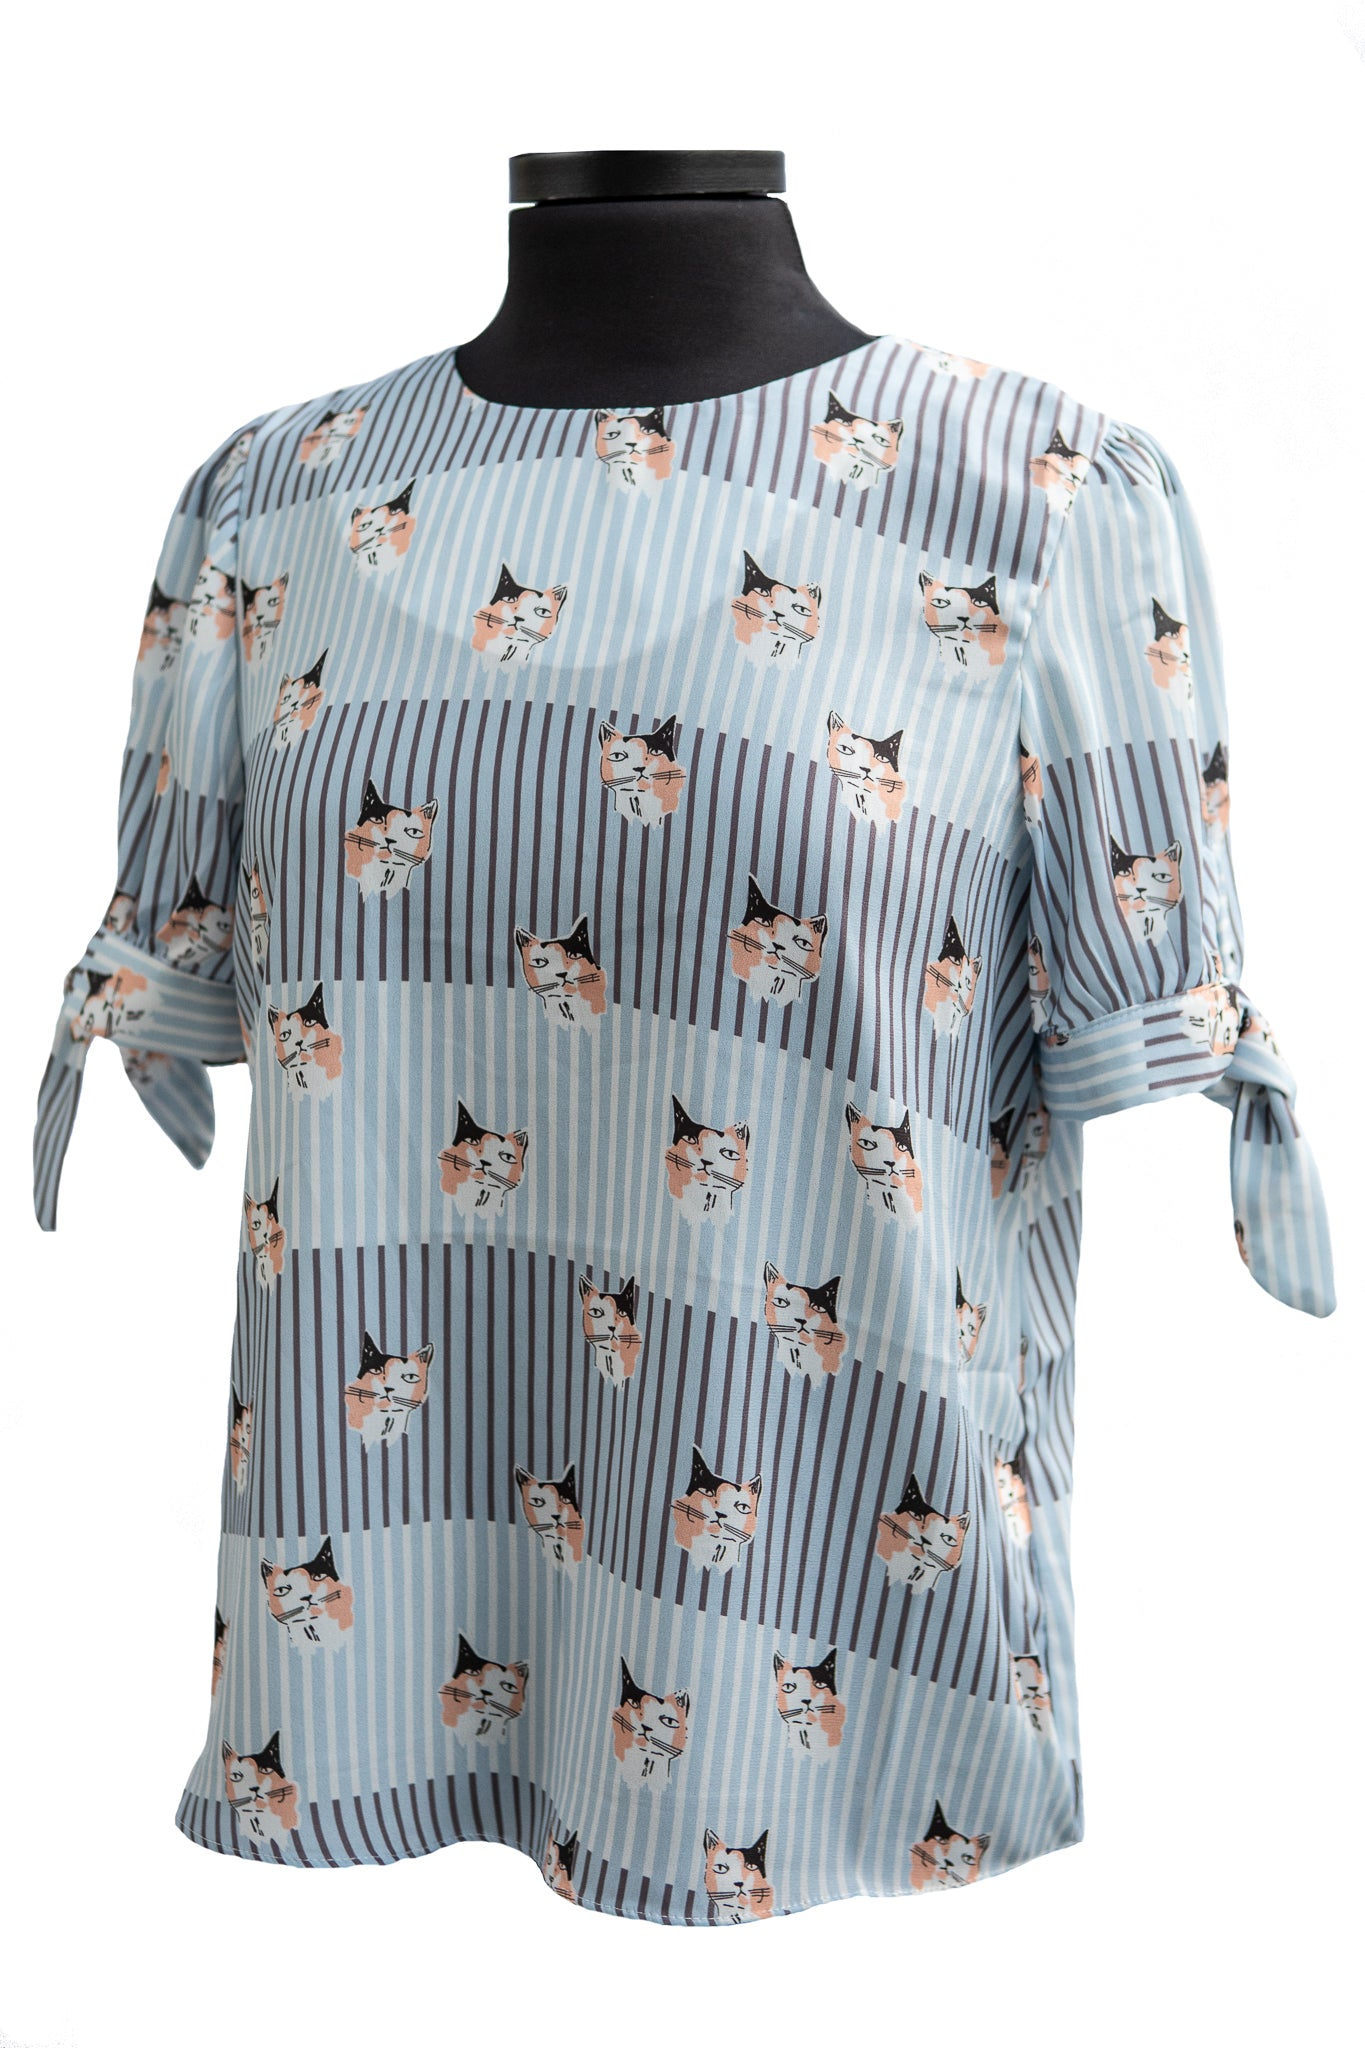 Molly Bracken Striped Pattern Printed Cat Blouse